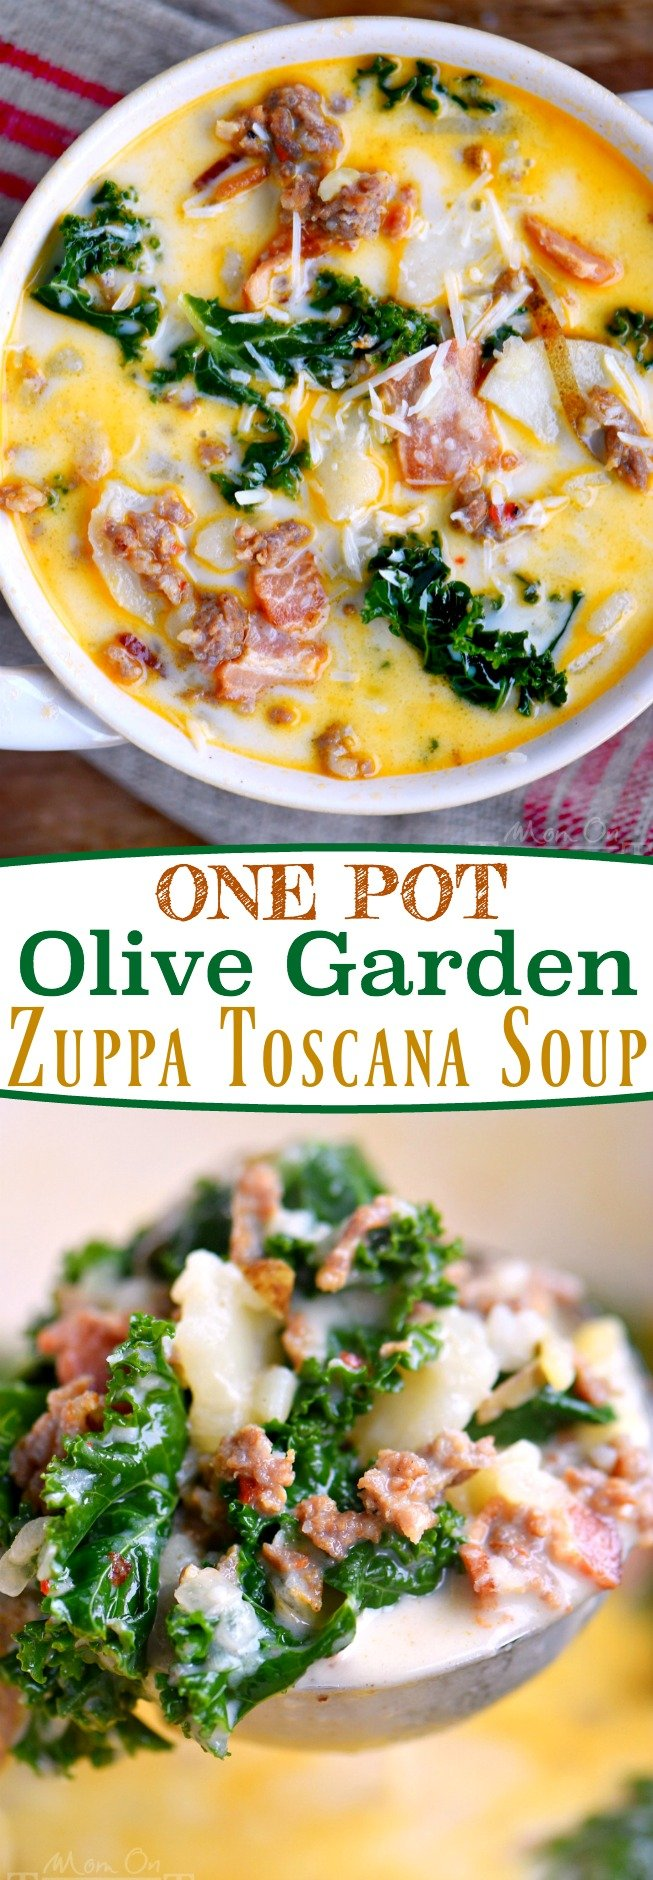 One pot olive garden zuppa toscana soup mom on timeout for Olive garden potato sausage kale soup recipe